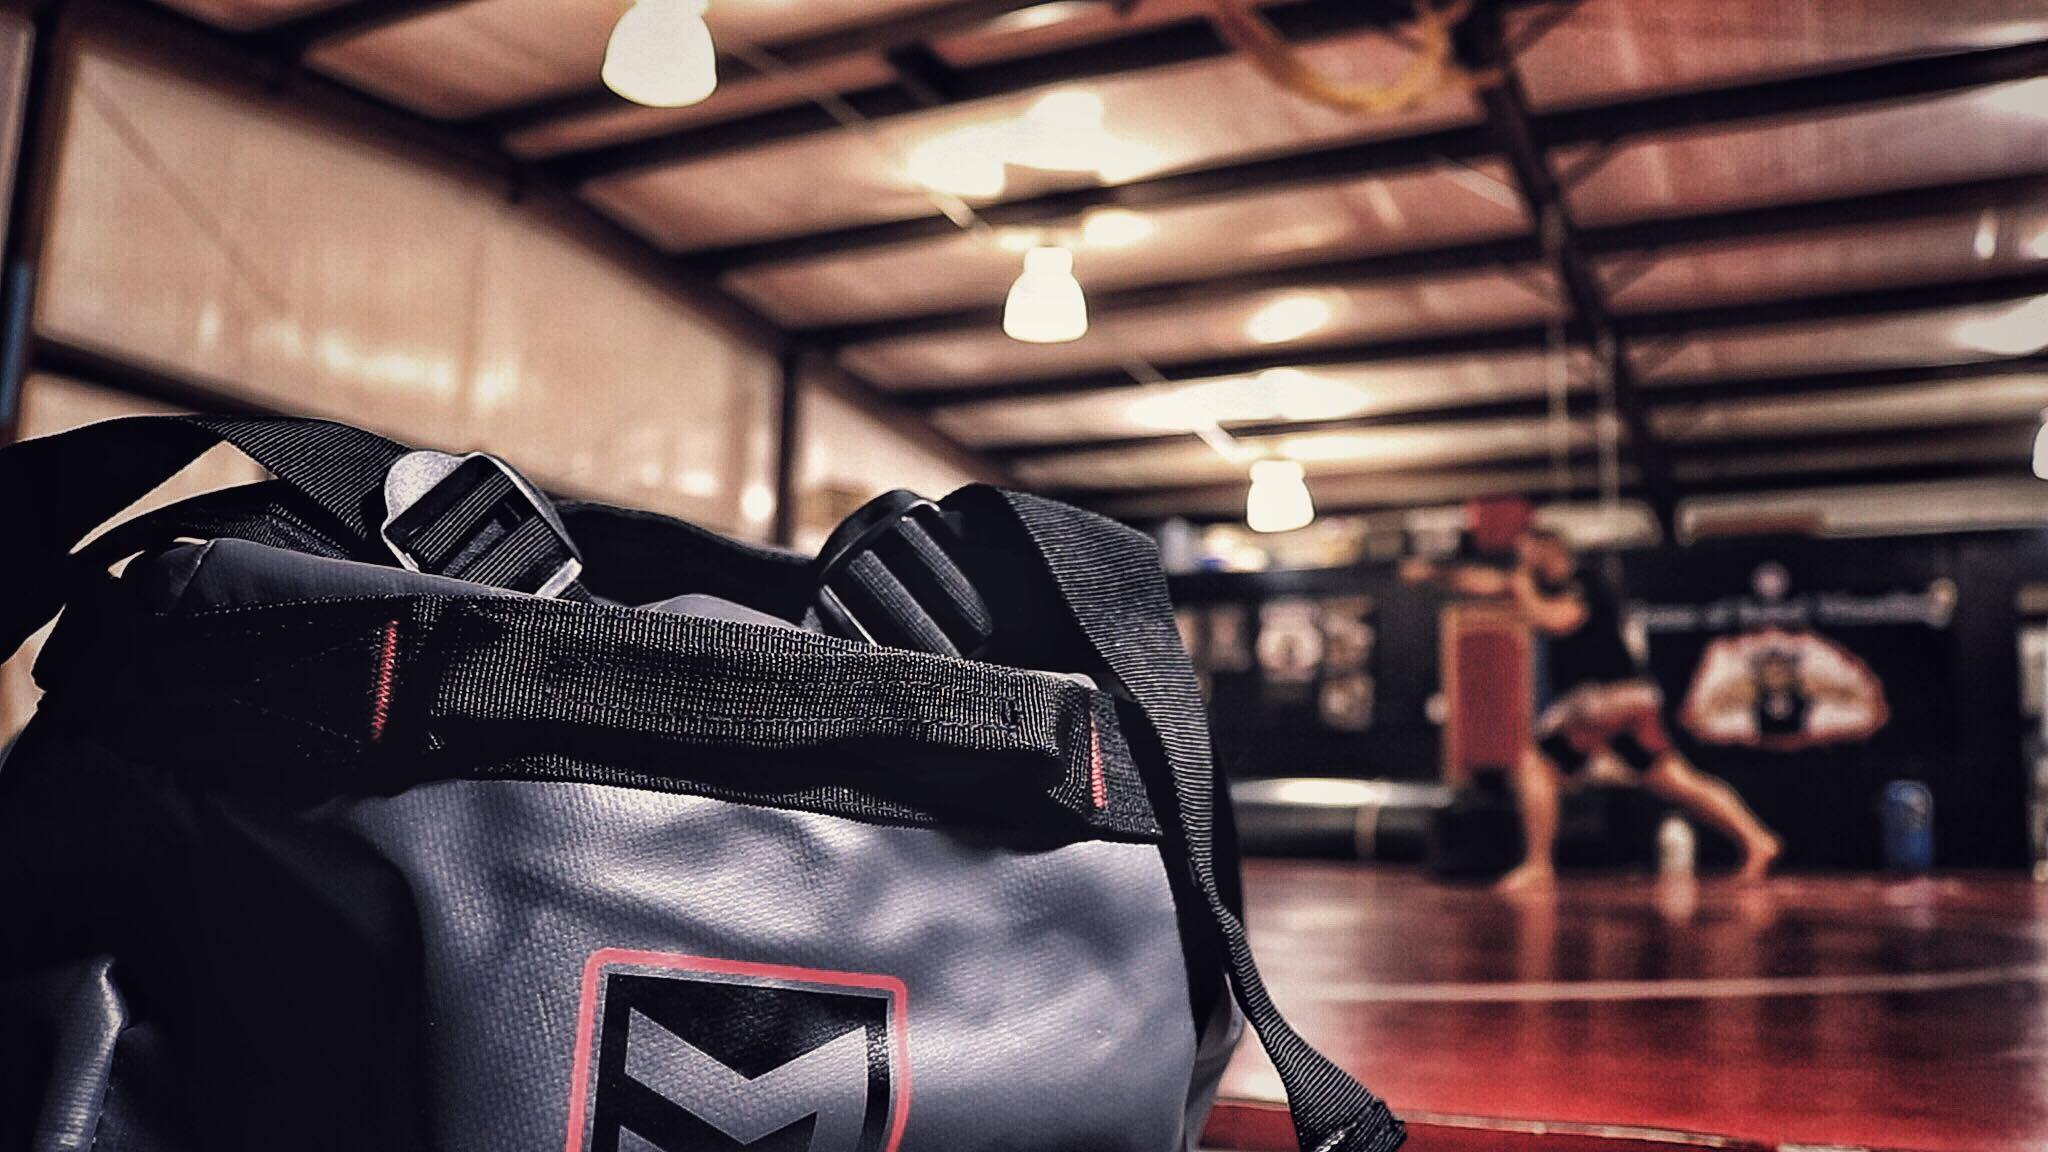 MMA & Fitness Gear Breakdown – What's In Primal's Gym Bag?